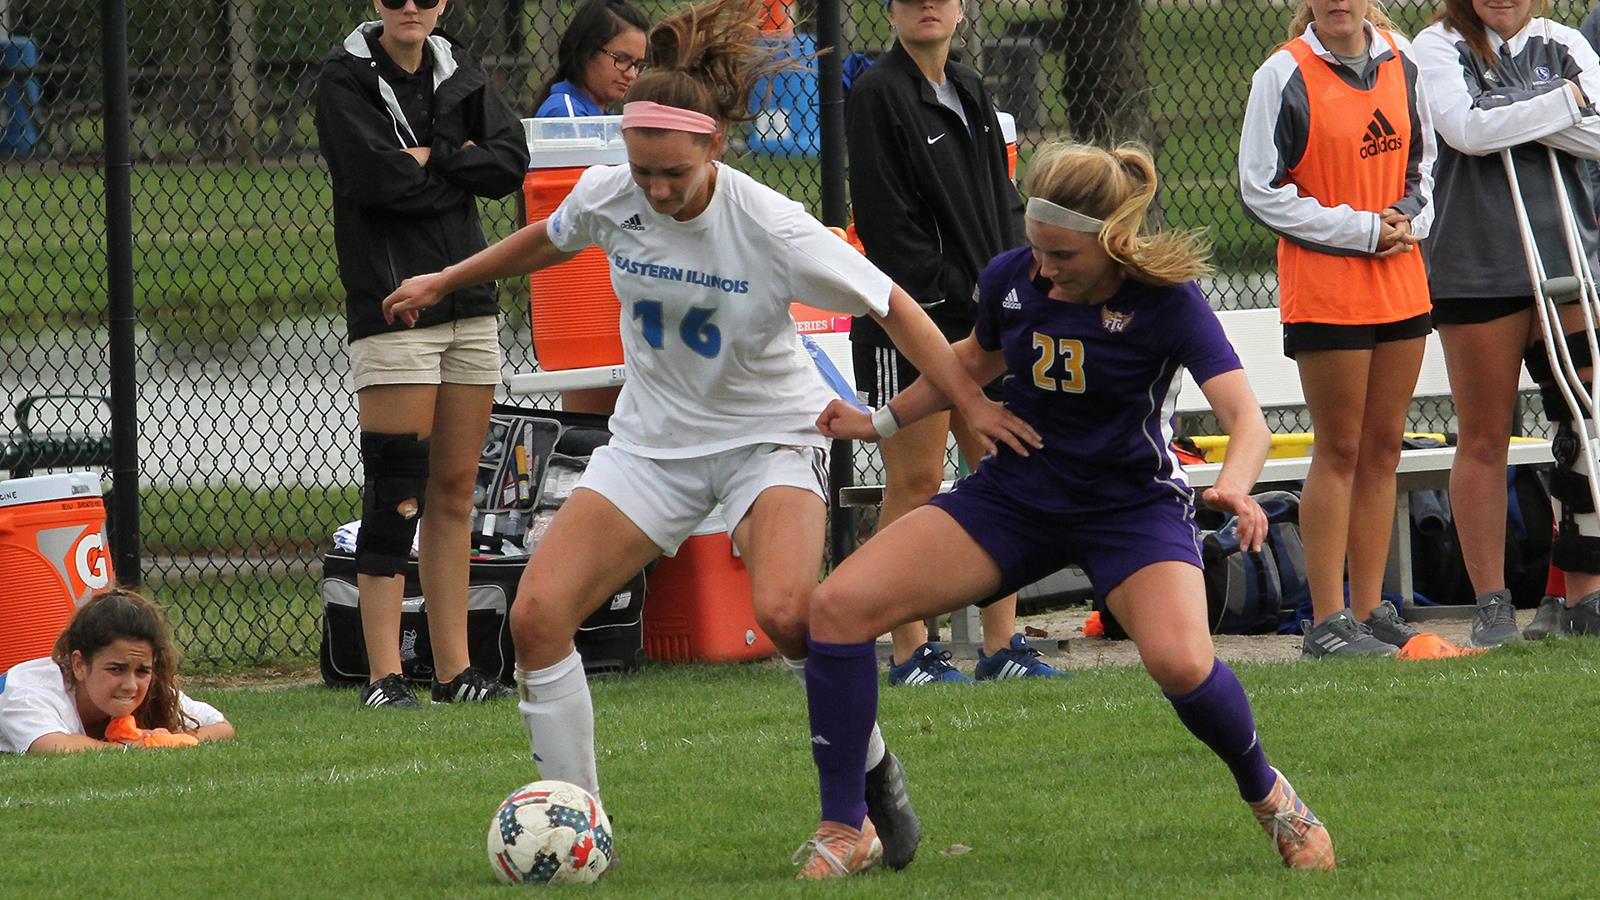 Tausend Scores For Womens Soccer In 2 1 Loss   Eastern Illinois 1600x900